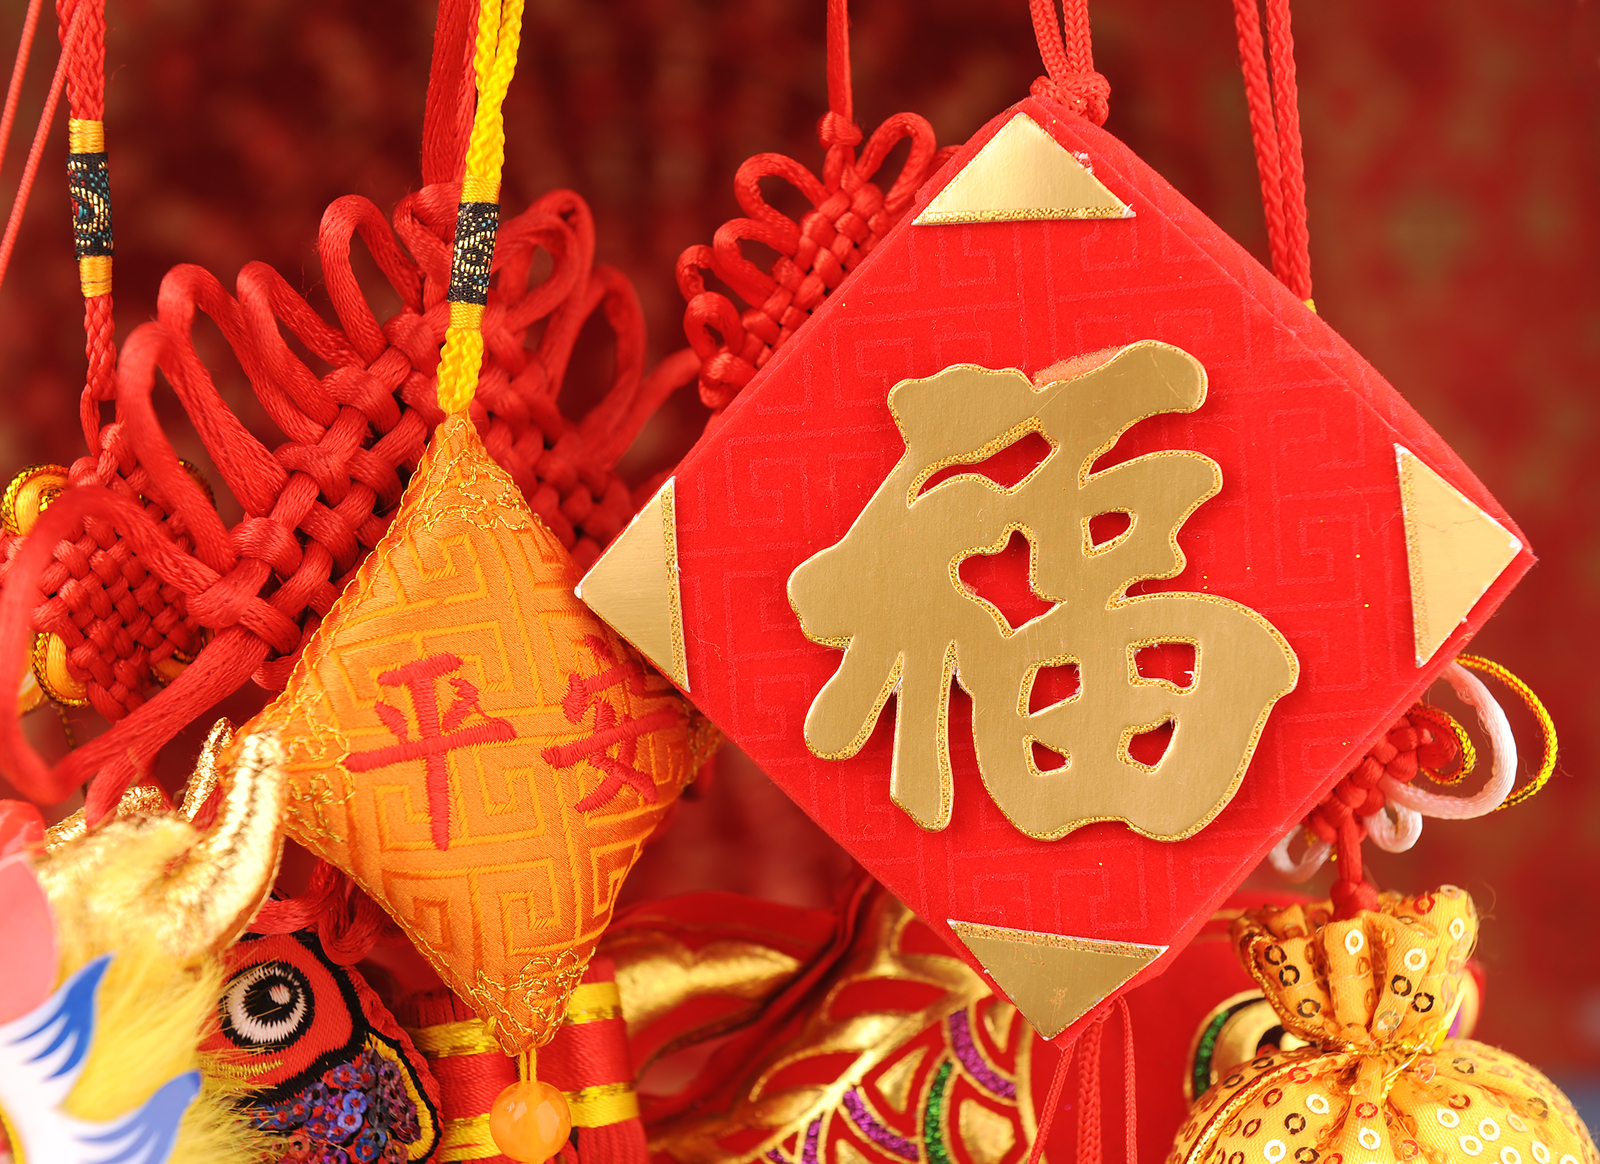 gong xi fa cai to all malaysians